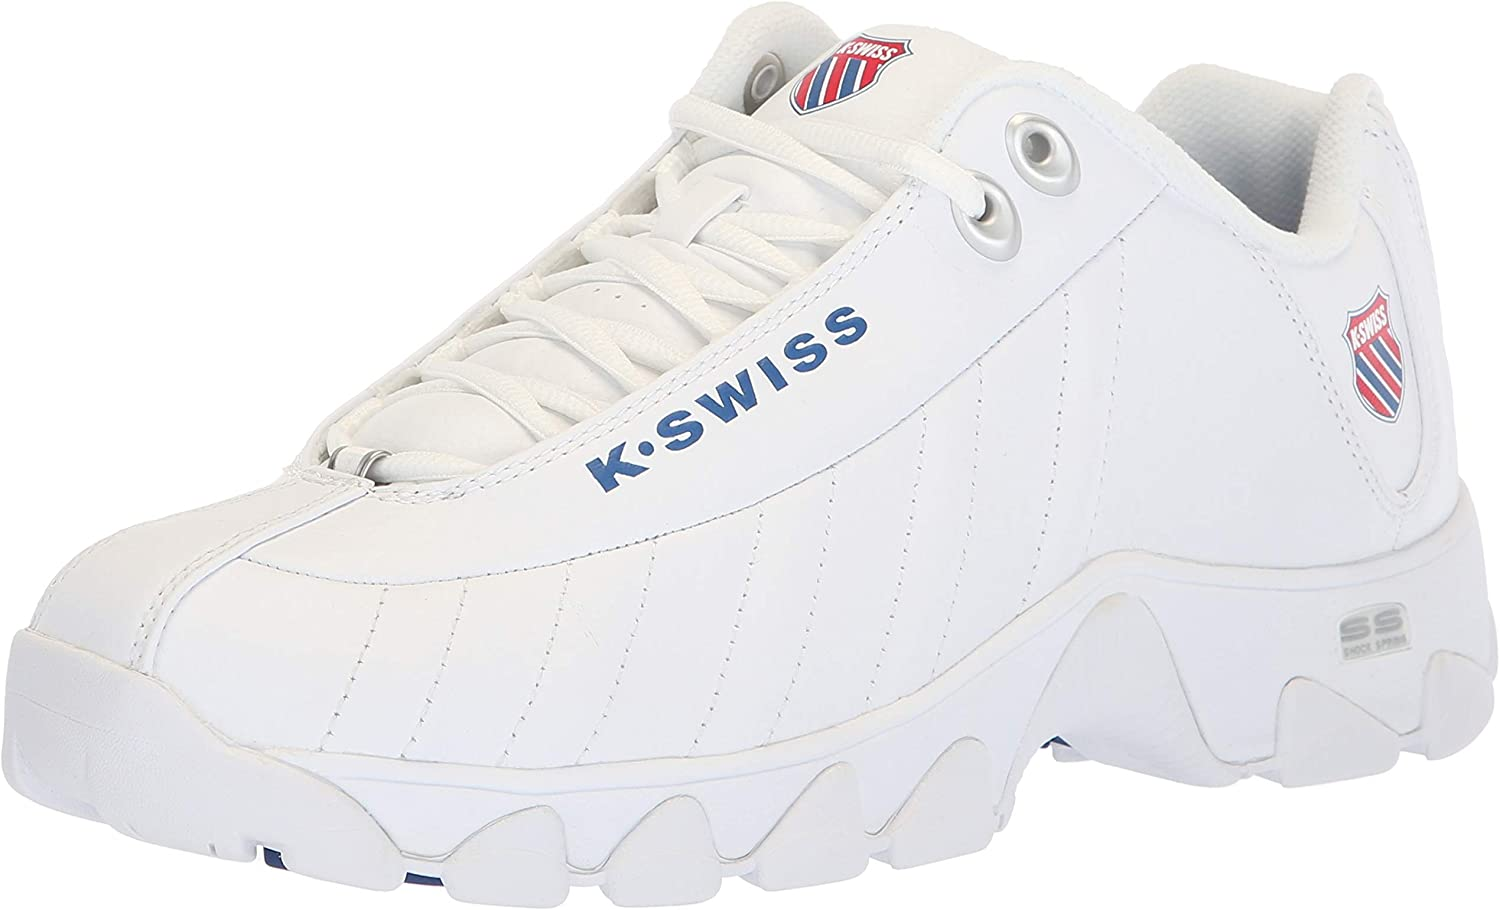 Vintage Sneakers, Retro Designs for Women K-Swiss Mens St329 Heritage Sneaker $49.99 AT vintagedancer.com